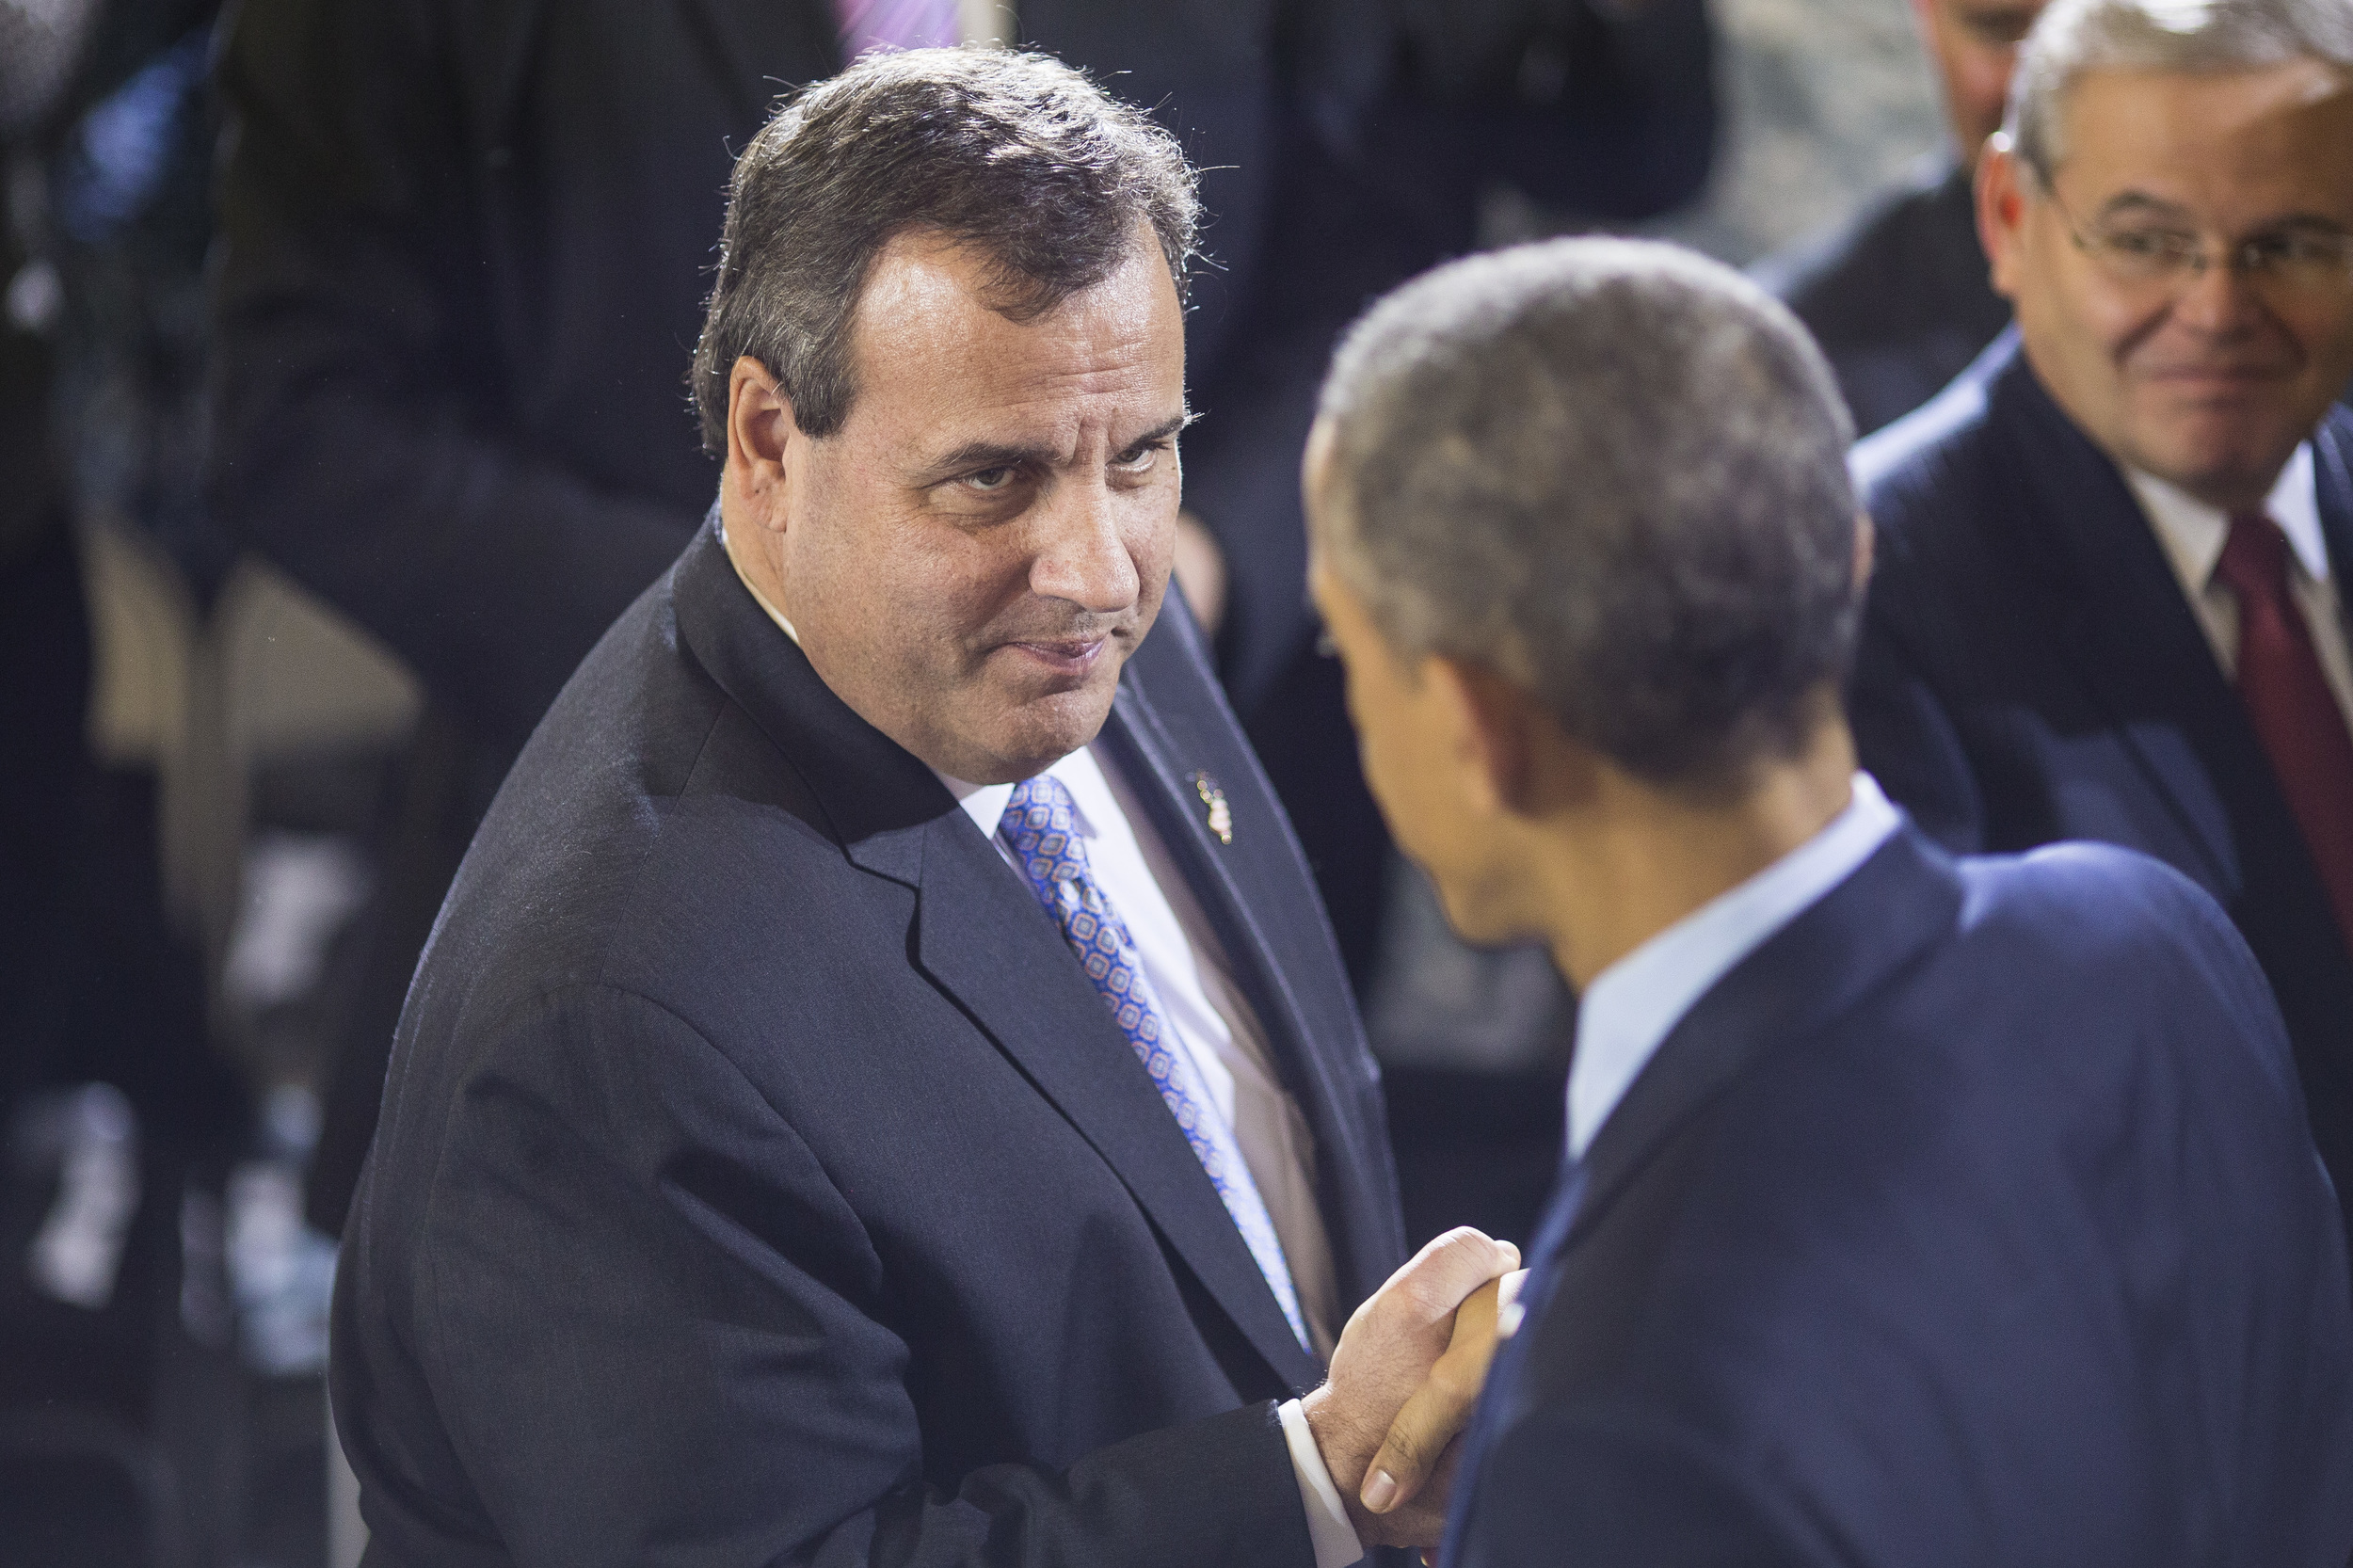 New Jersey Gov. Chris Christie shakes hands with President Obama after he delivered remarks expressing his gratitude for the service and sacrifice of troops and their families at Joint Base McGuire-Dix-Lakehurst in Joint Base McGuire-Dix-Lakehurst, NJ on Monday December 15, 2014.